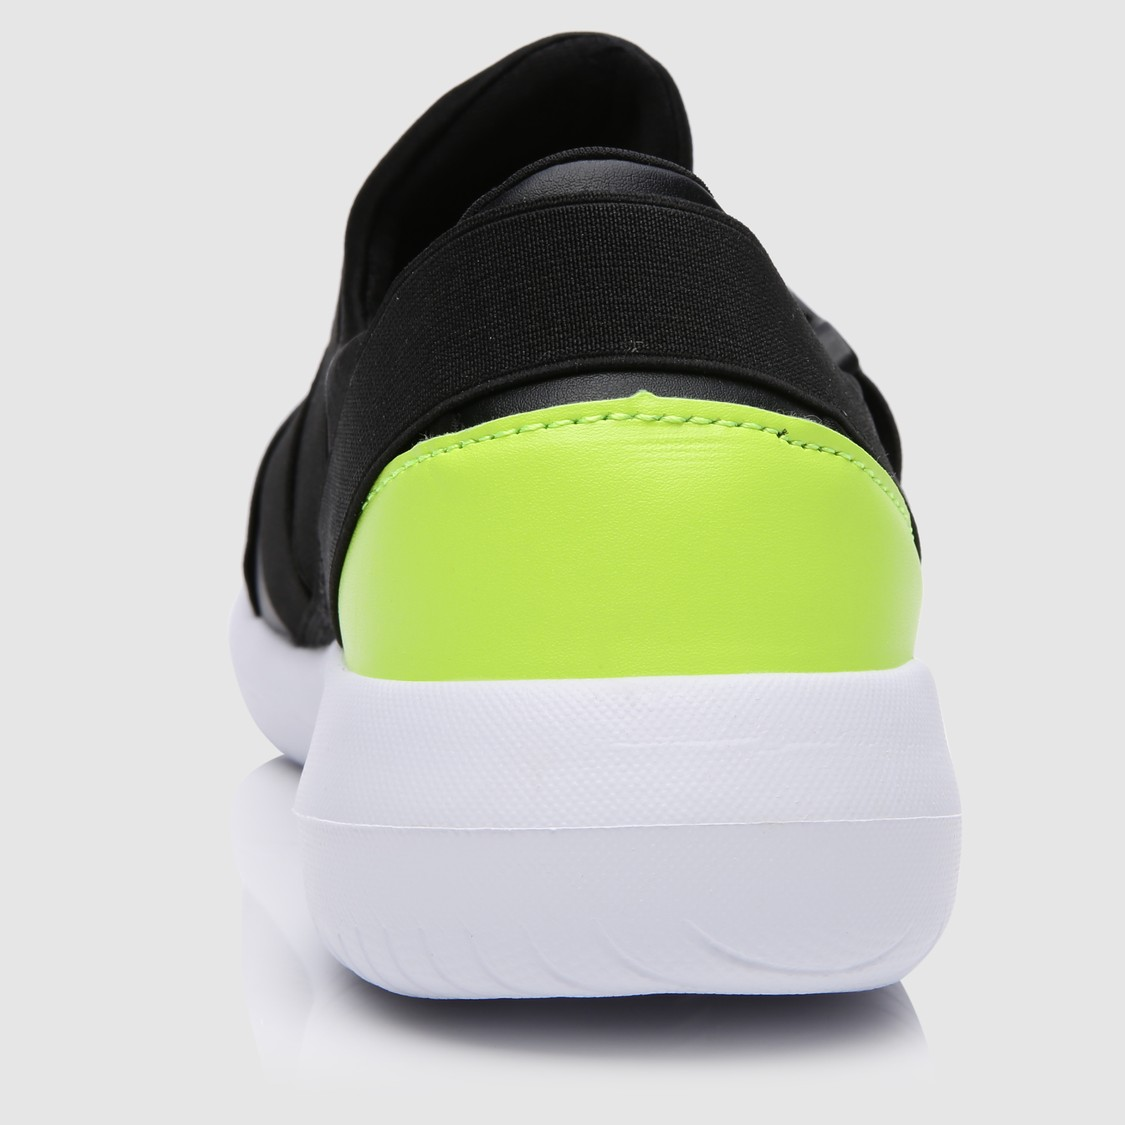 Sports Shoes with Elasticised Band and Buckle Closure